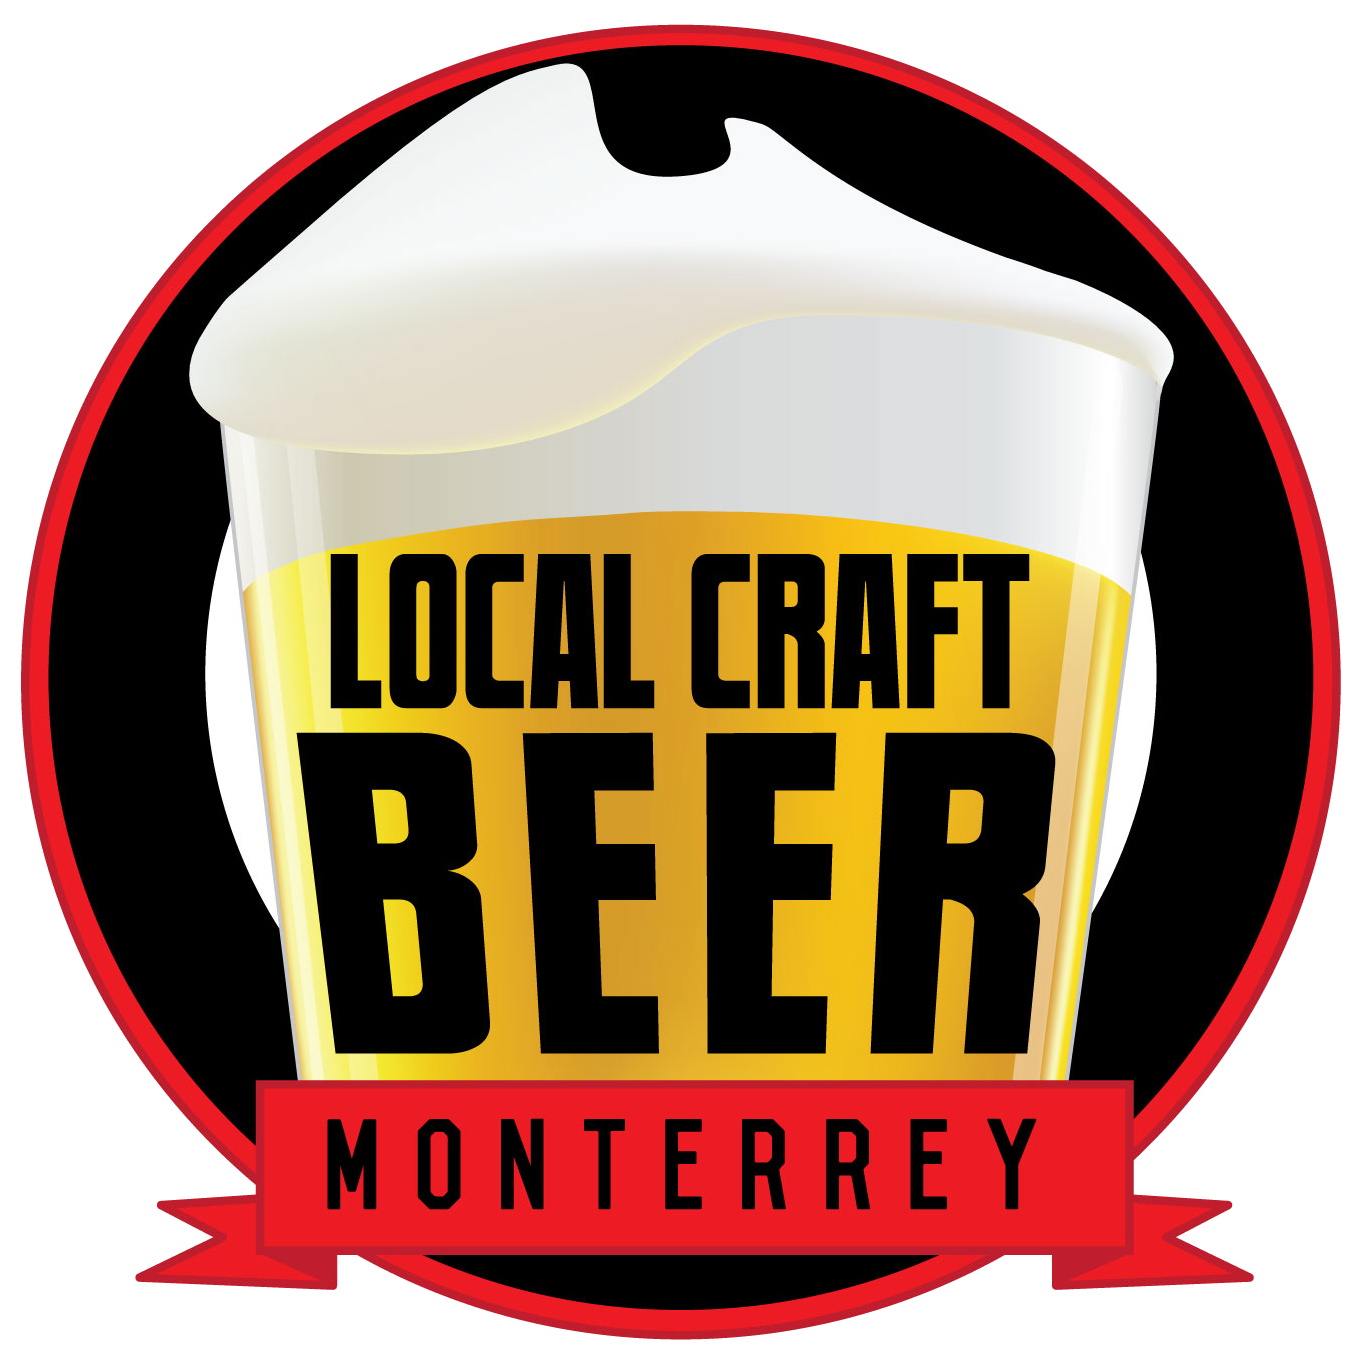 ¡Local Craft Beer!